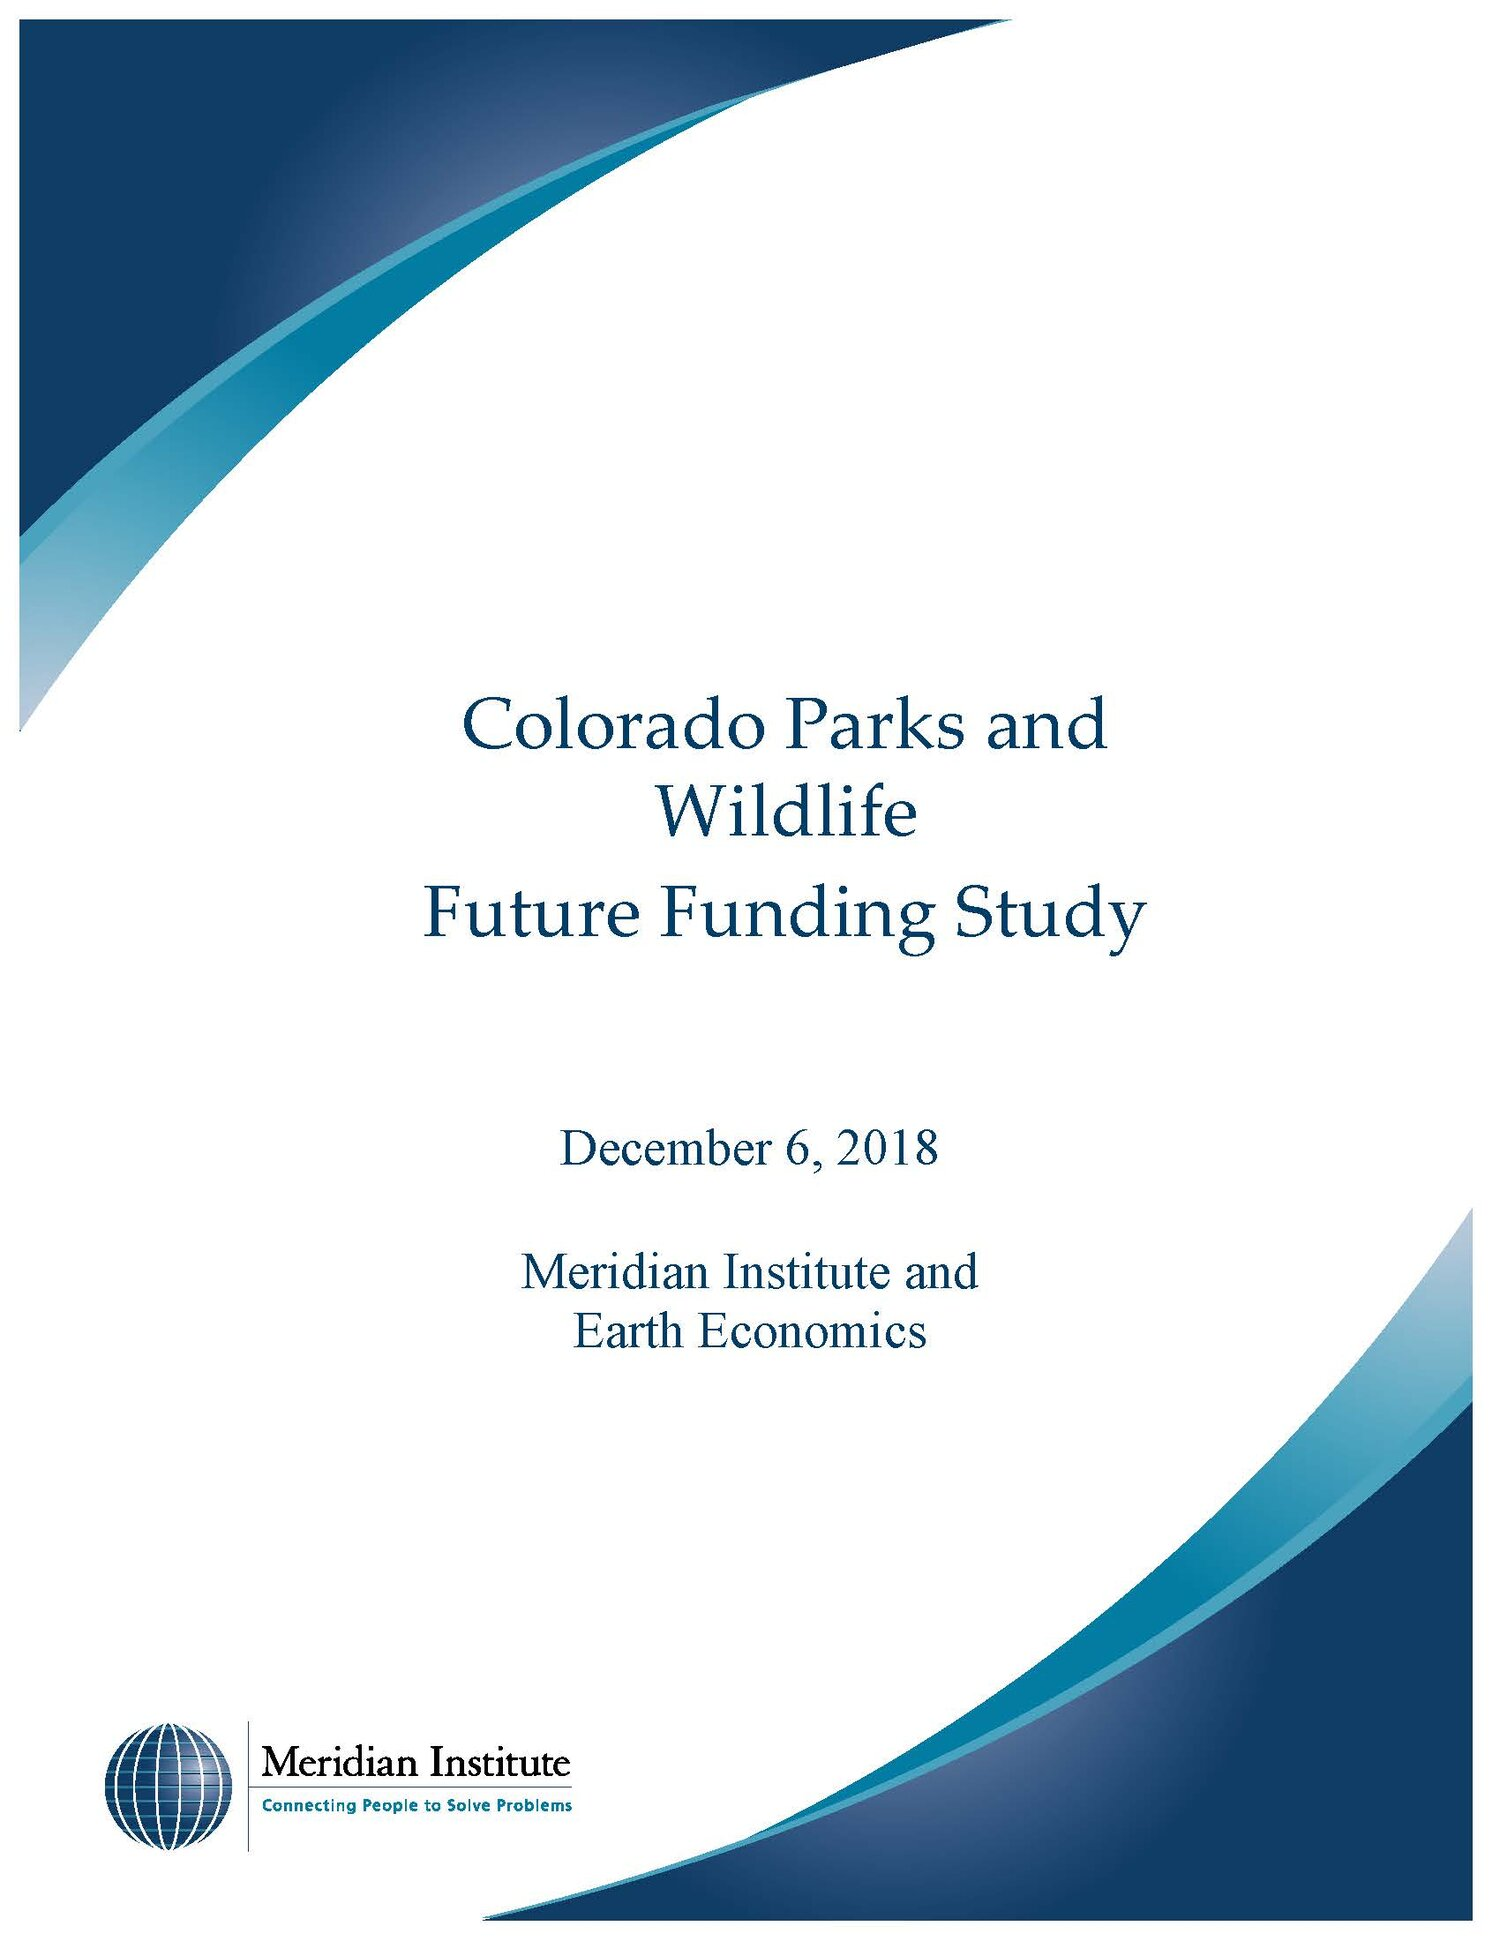 Pages from ColoradoParksandWildlifeFutureFundingStudy_EarthEconomics_Dec2018.jpg